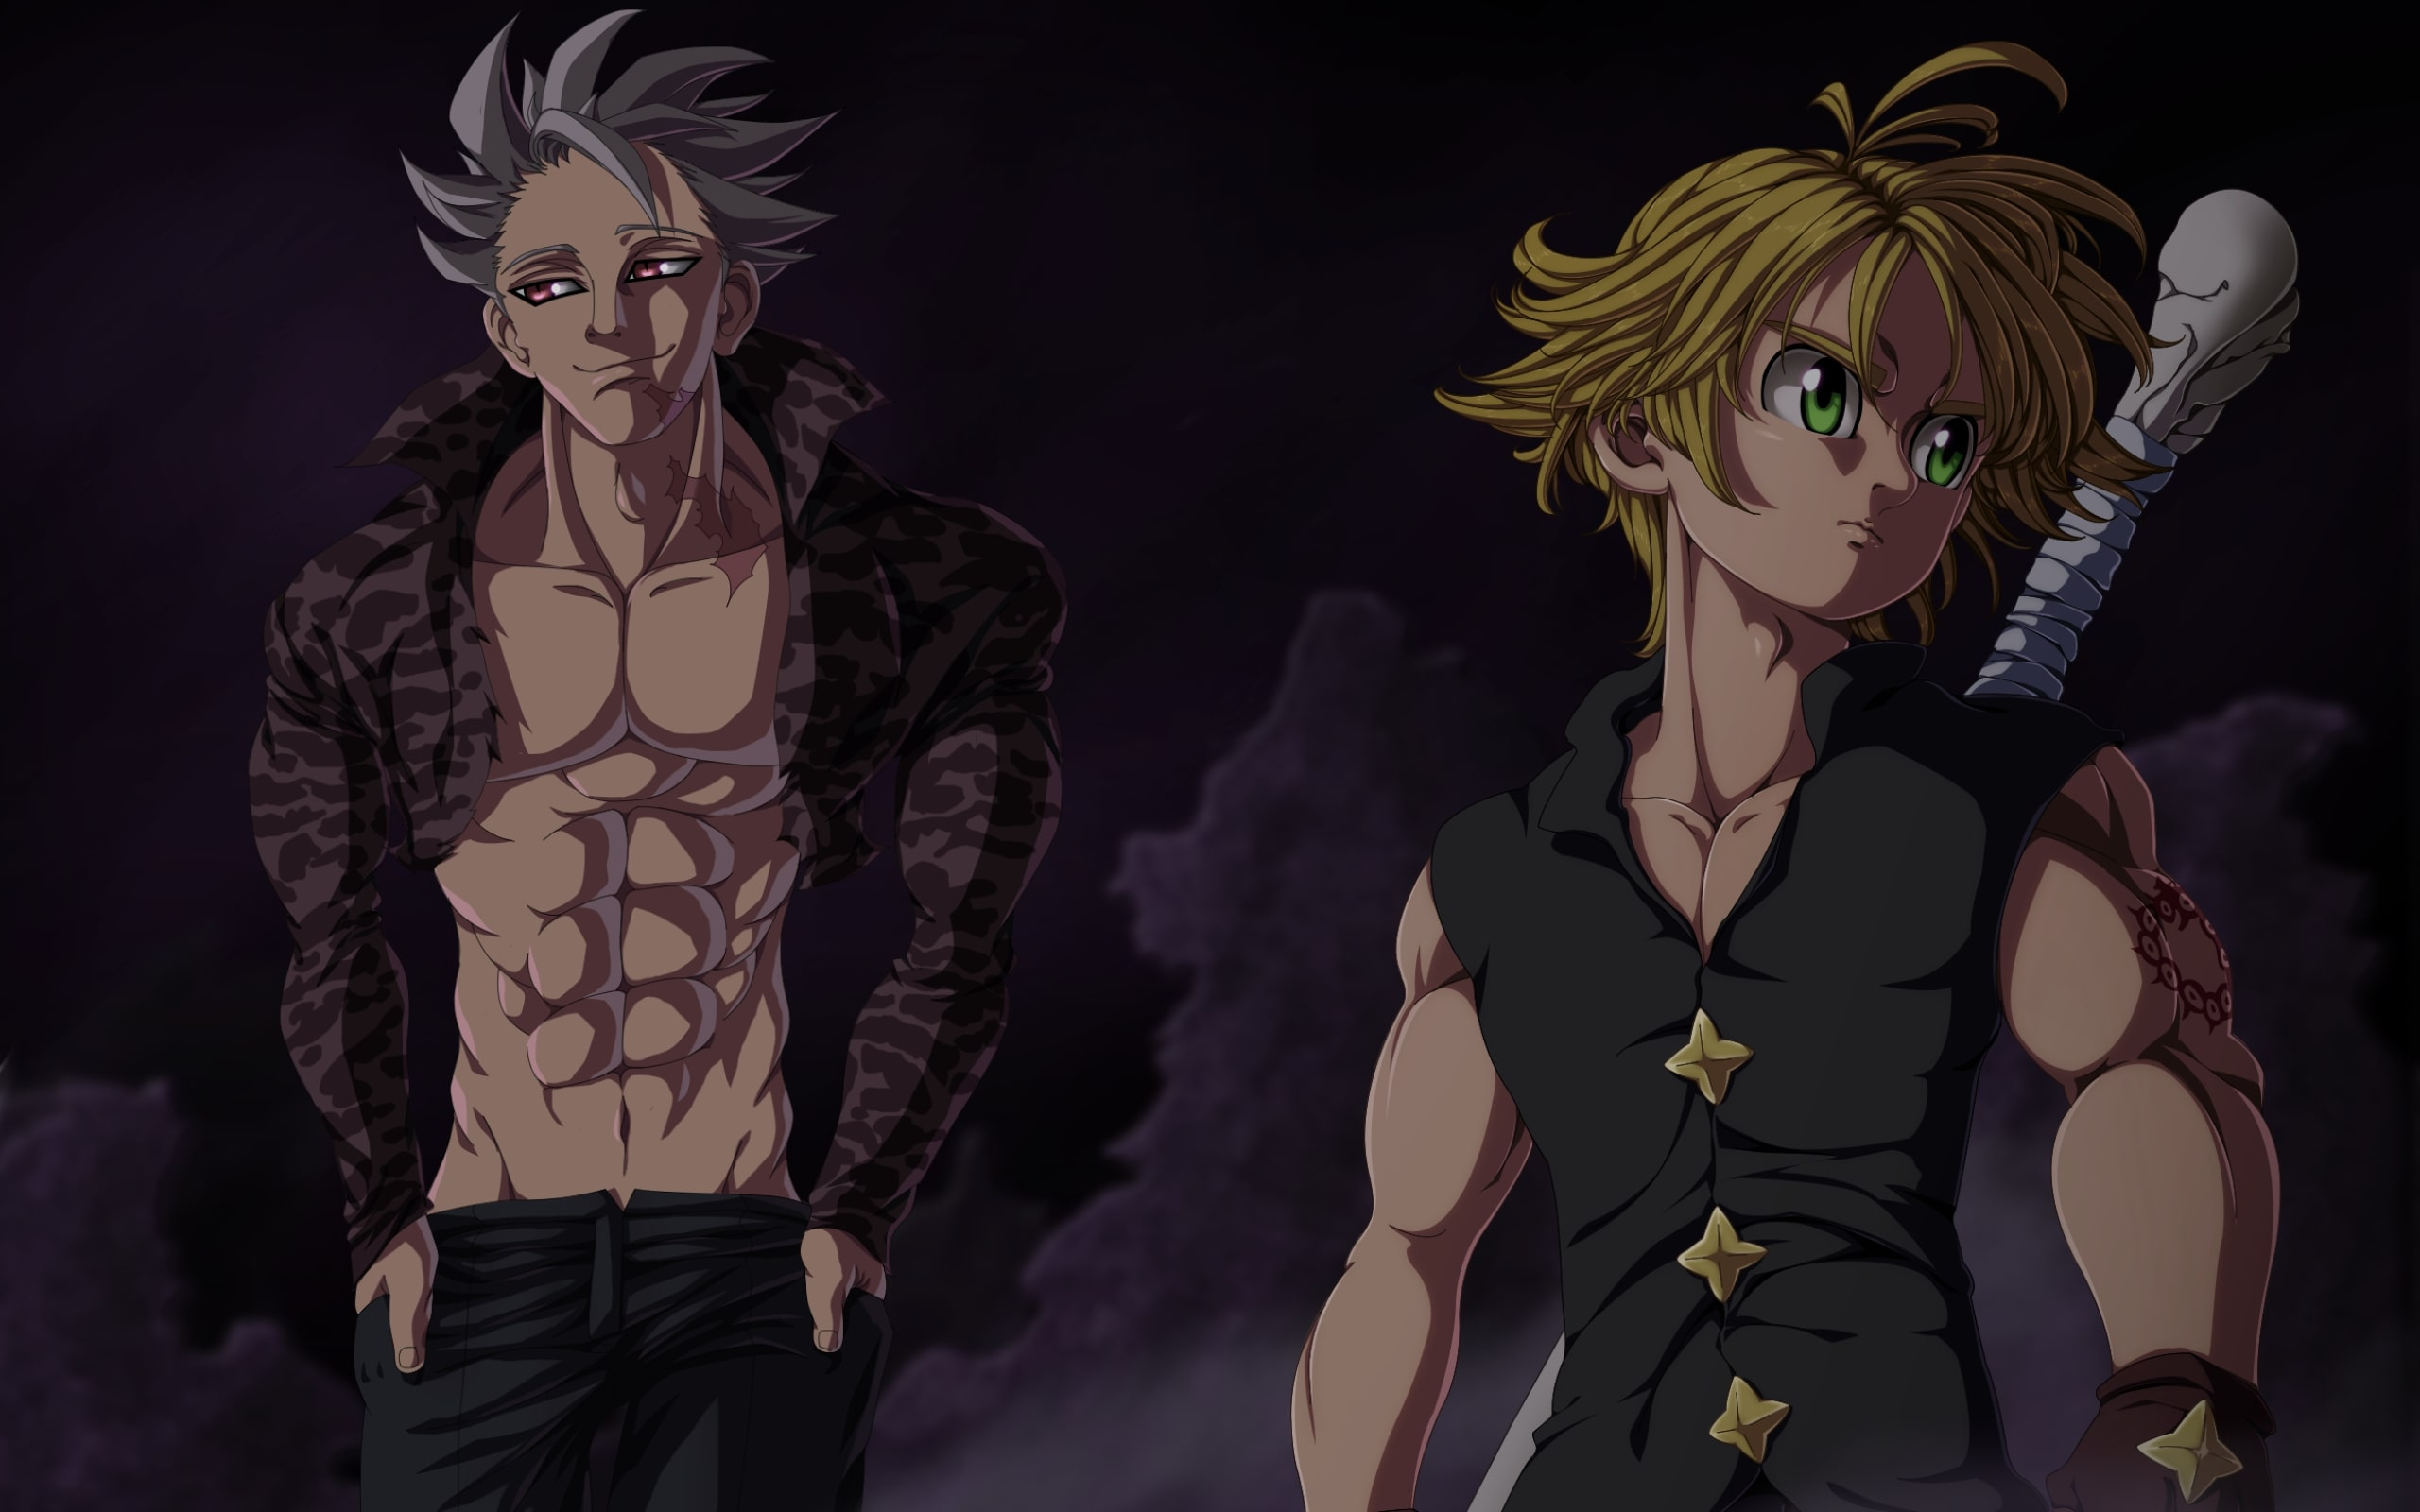 Wallpaper of ban the seven deadly sins meliodas anime sin background hd image - Ban seven deadly sins wallpaper ...